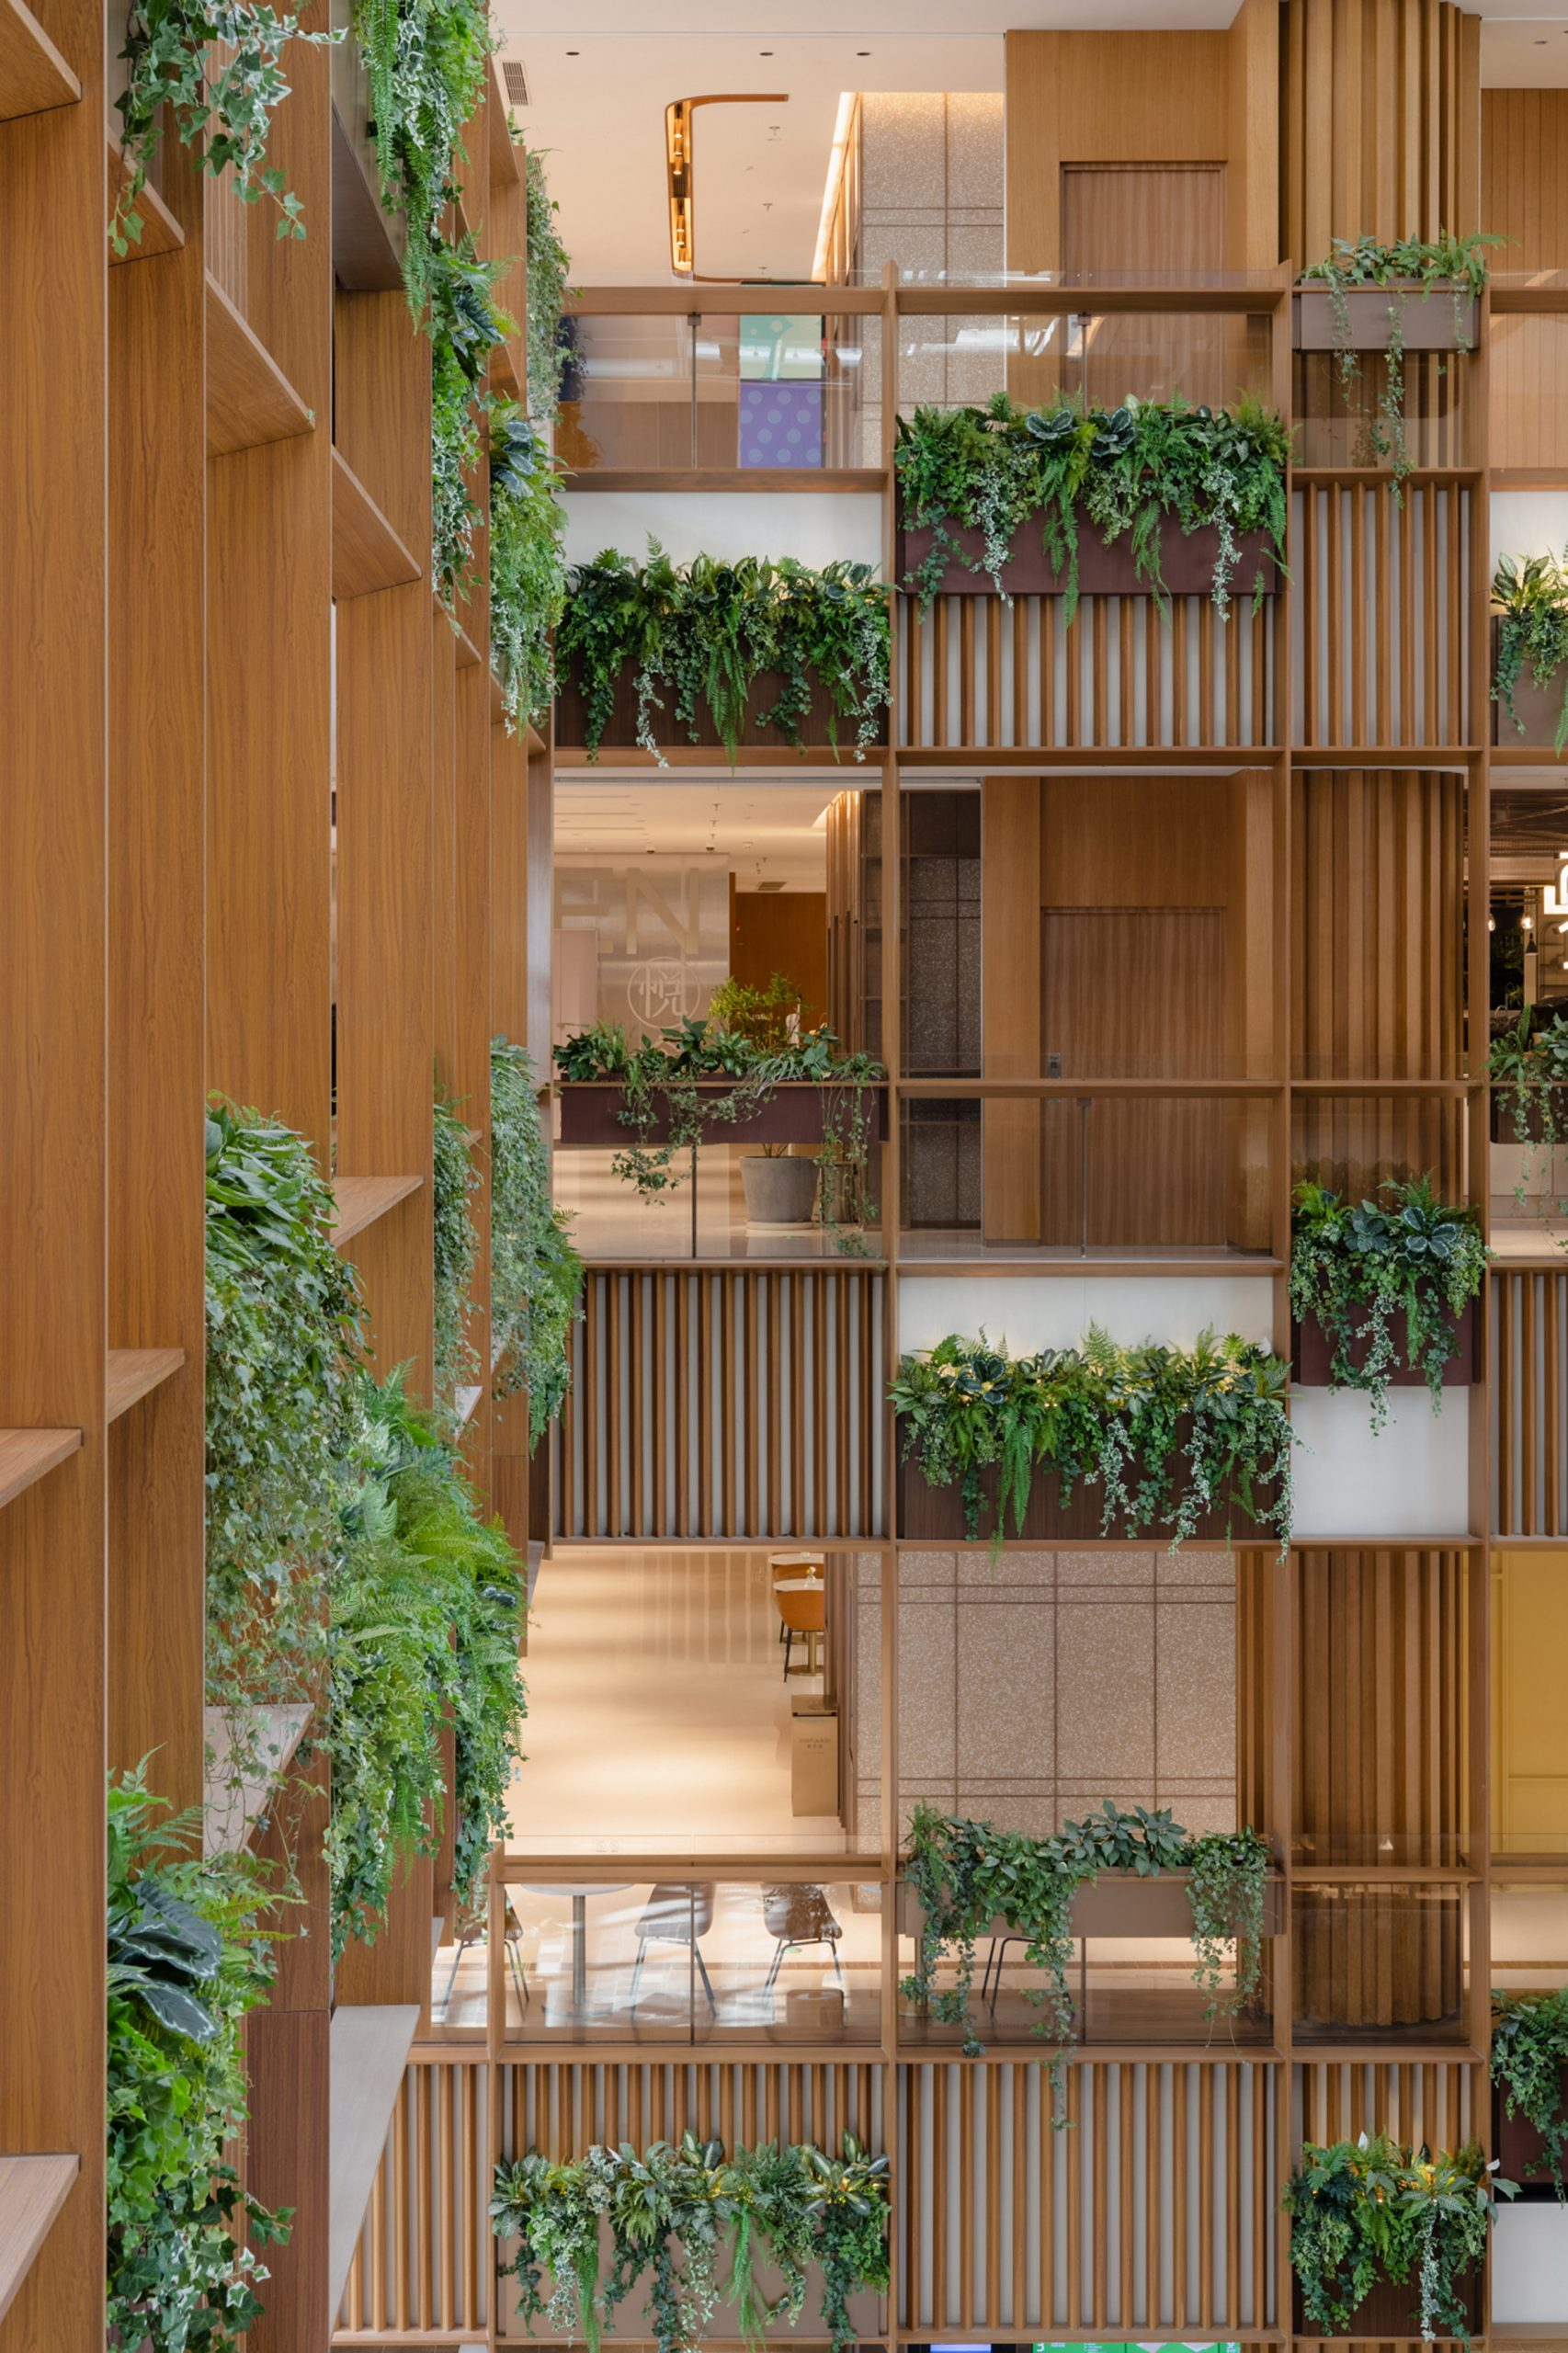 Hanging plants in Xintiandi atrium by AIM Architecture